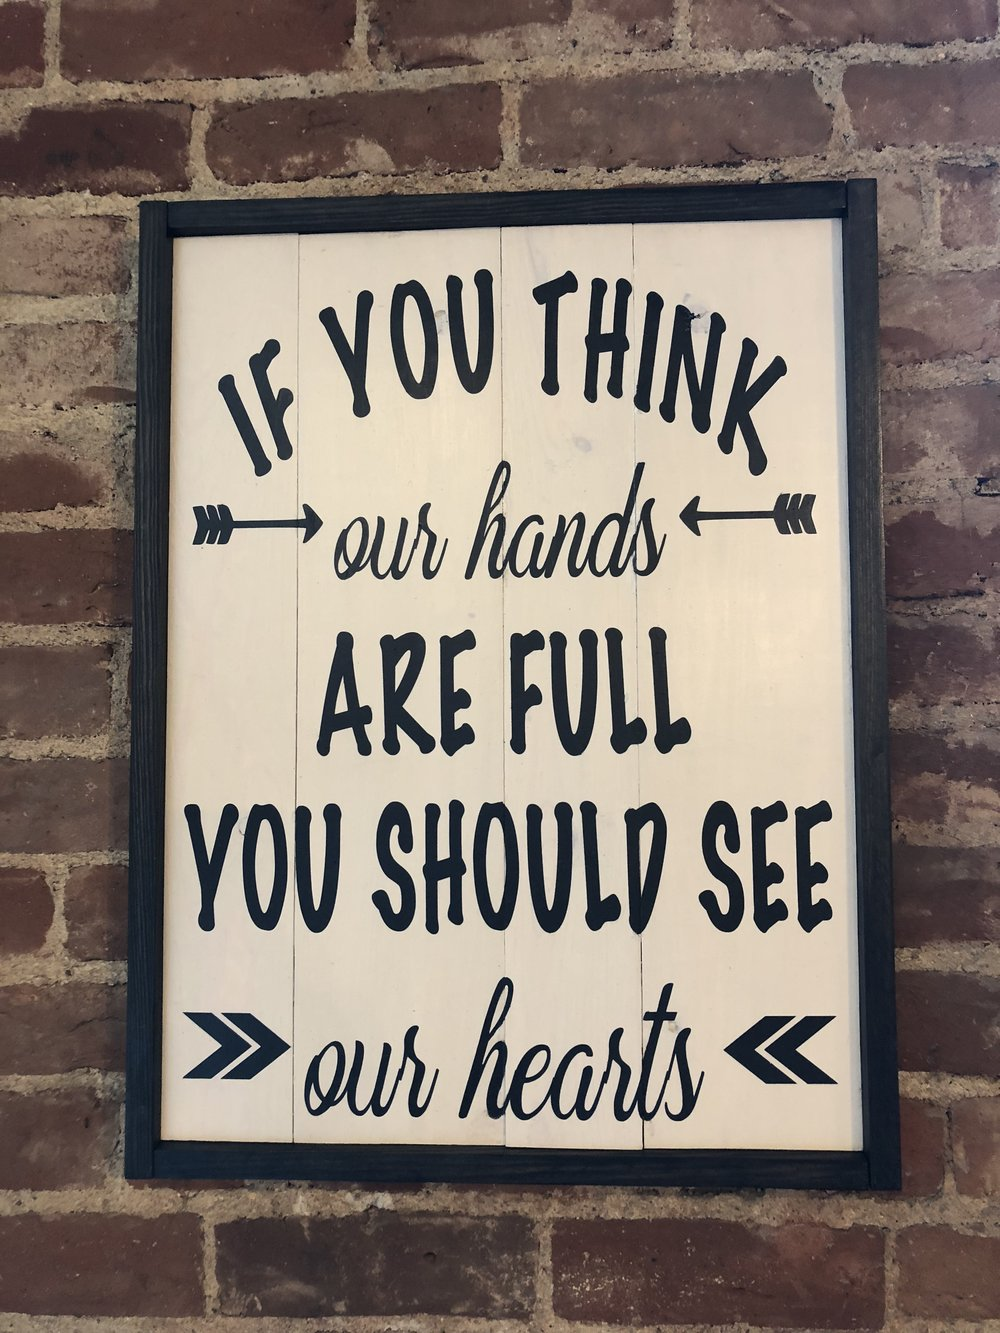 If you think our hands are full You should see our hearts